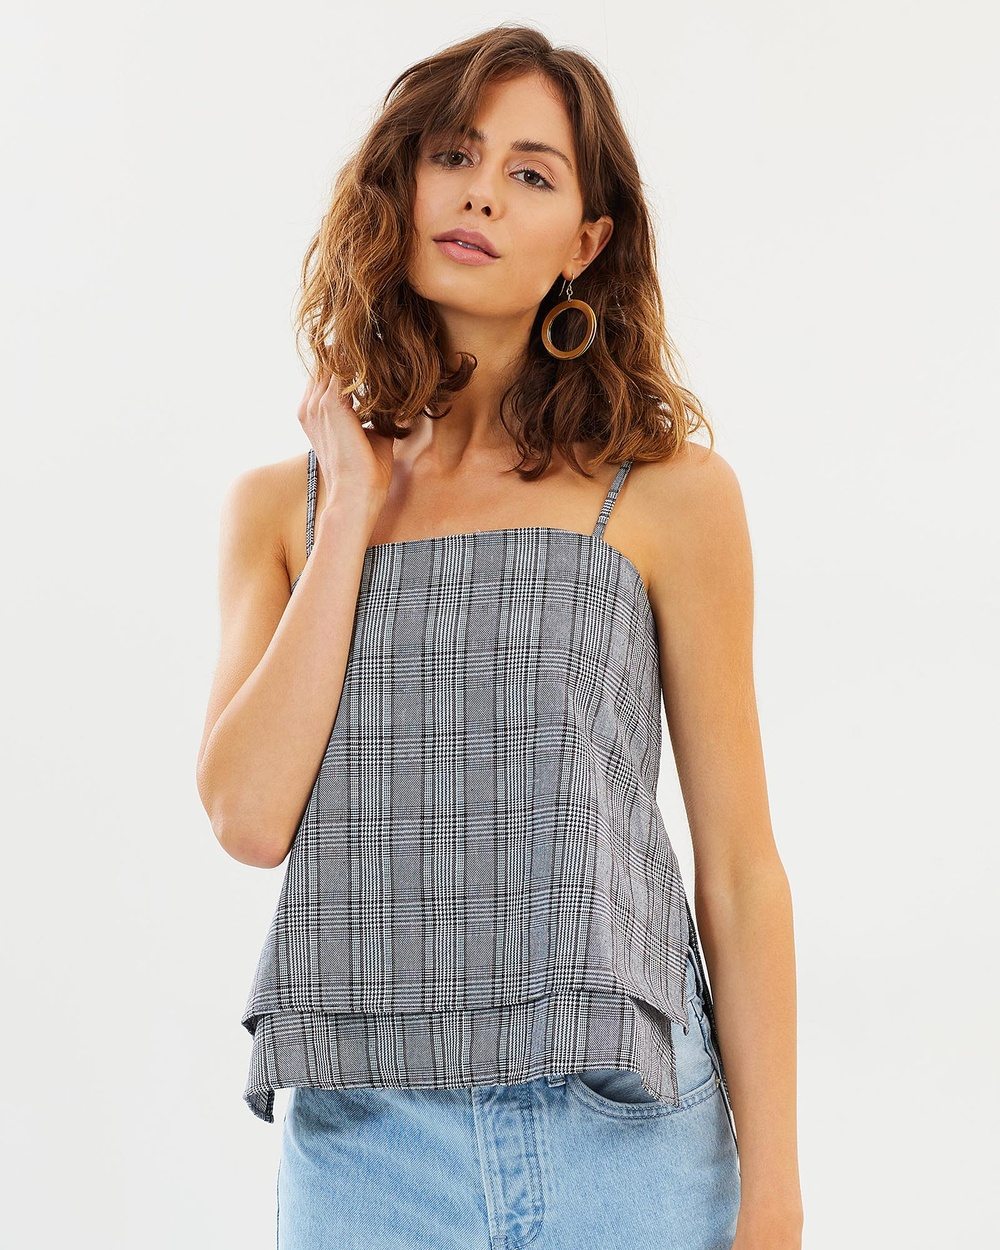 DELPHINE Assembly Top Tops Grey Check Assembly Top